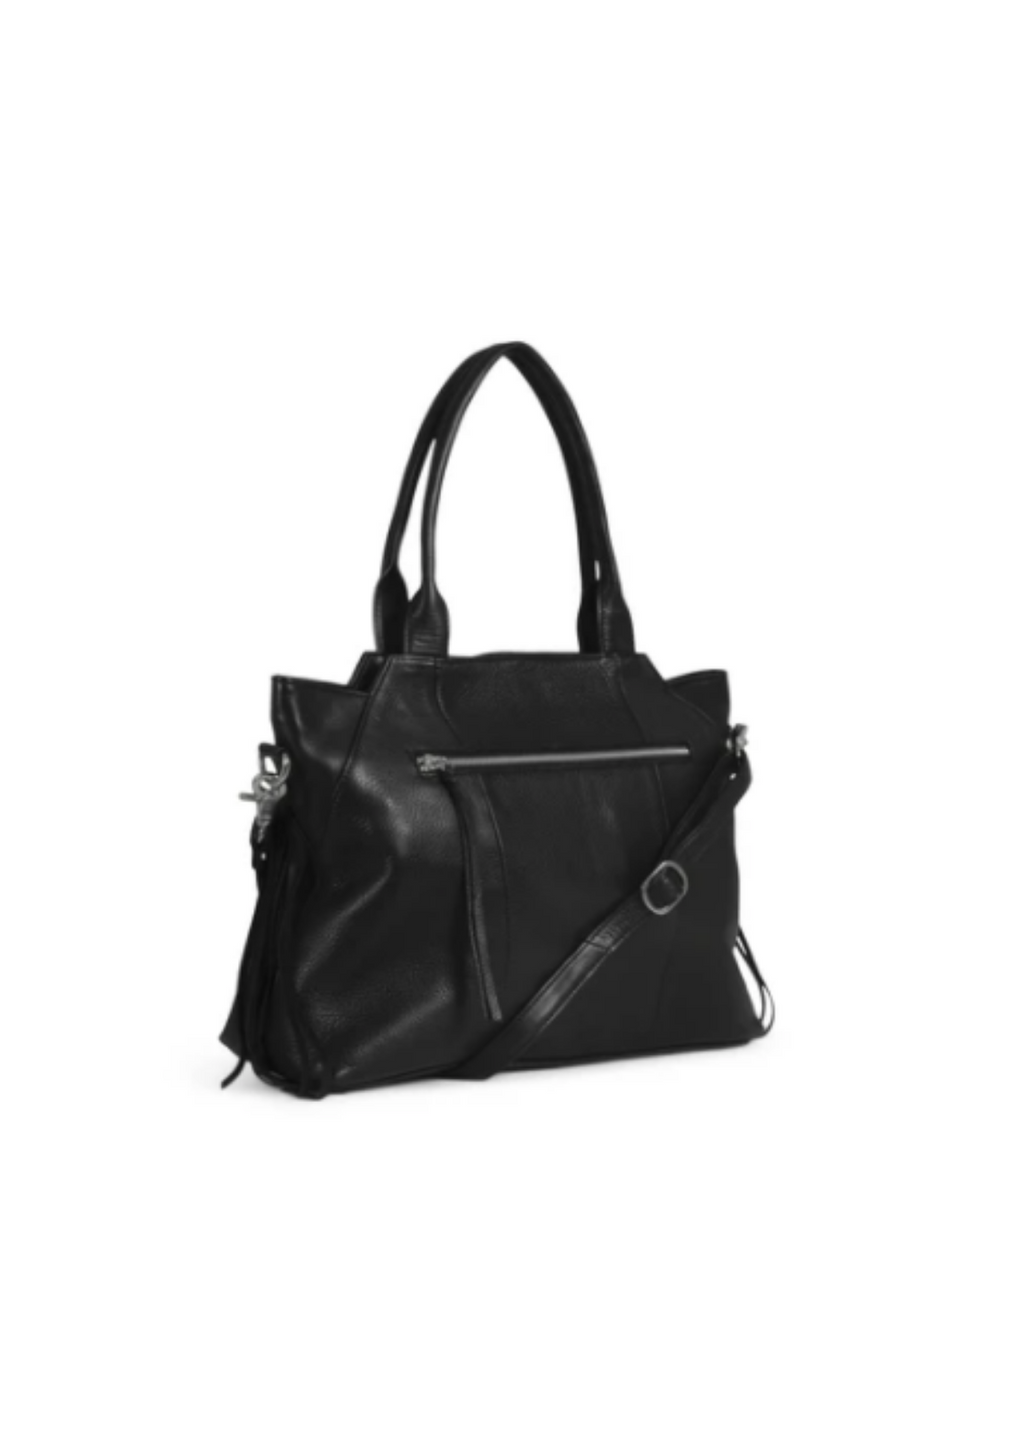 Hail Satchel – Black